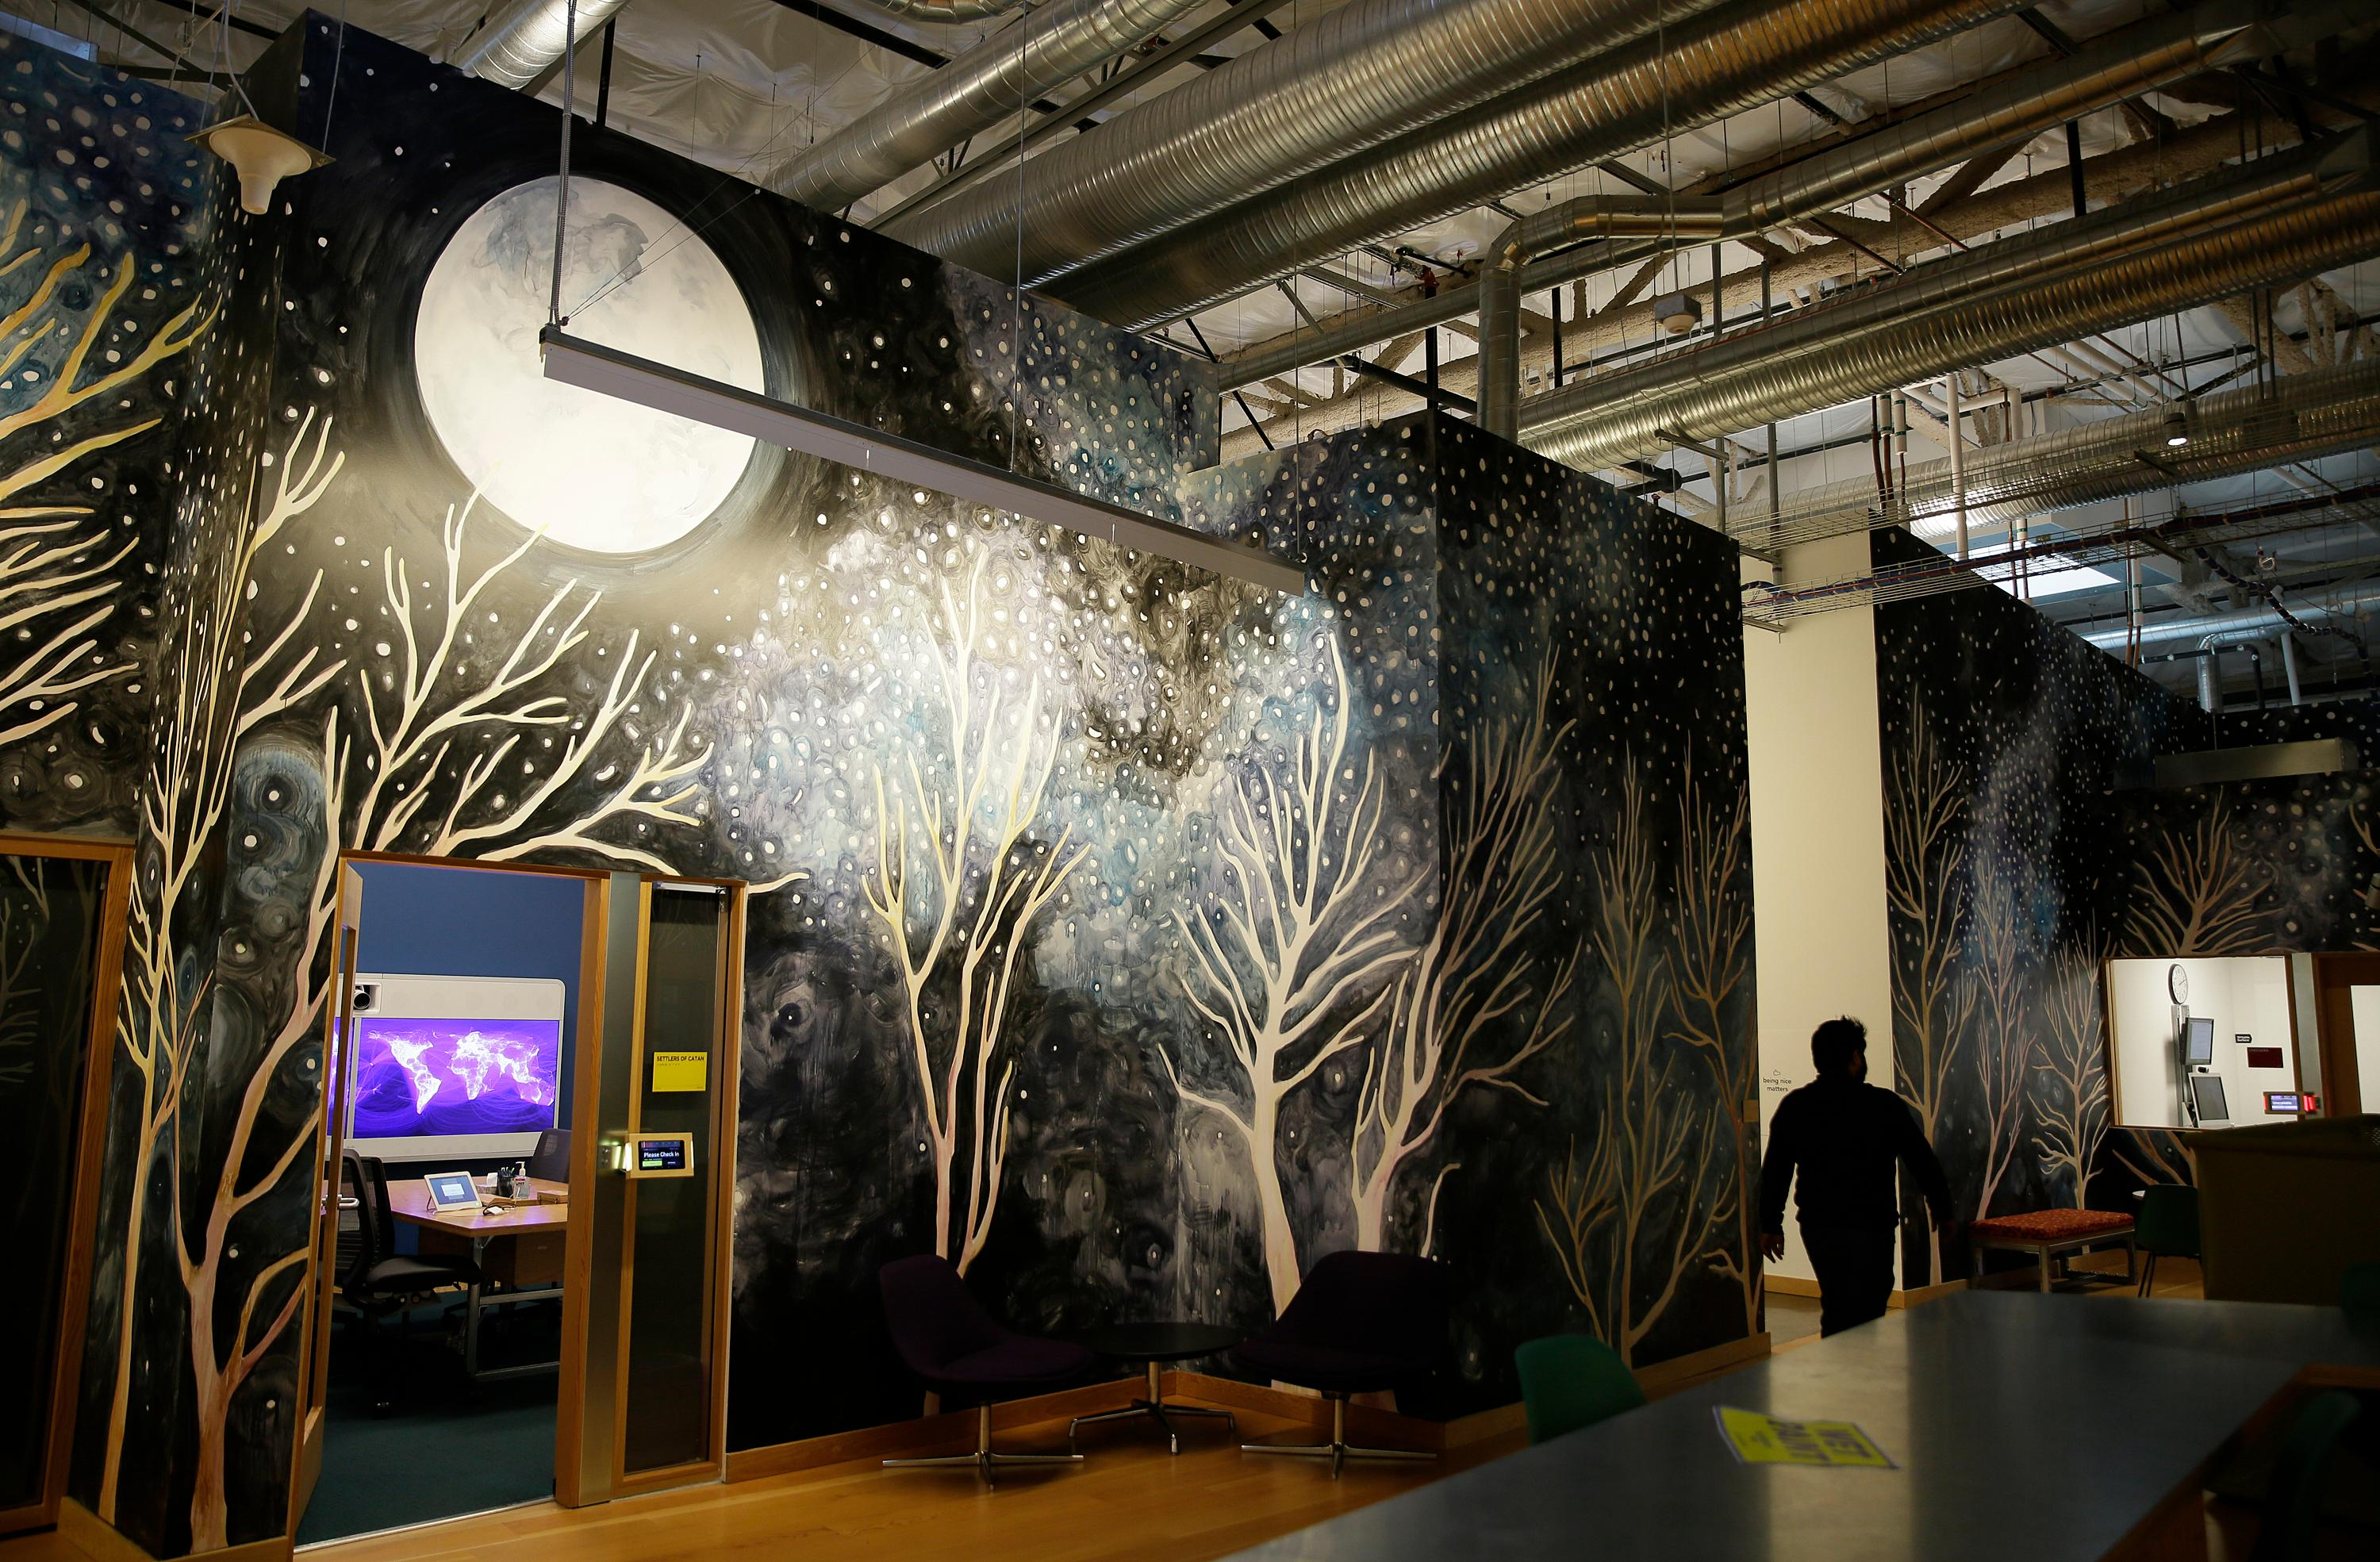 In this photo taken Monday, Dec. 18, 2017, a mural of a tree grove covers a wall inside a campus building at Facebook headquarters in Menlo Park, Calif. Facebook is unveiling a new AI-powered feature just in time for alcohol-filled holiday parties: you can now see untagged pictures of your face on your friend's news feeds and ask the poster to remove them. (AP Photo/Eric Risberg)